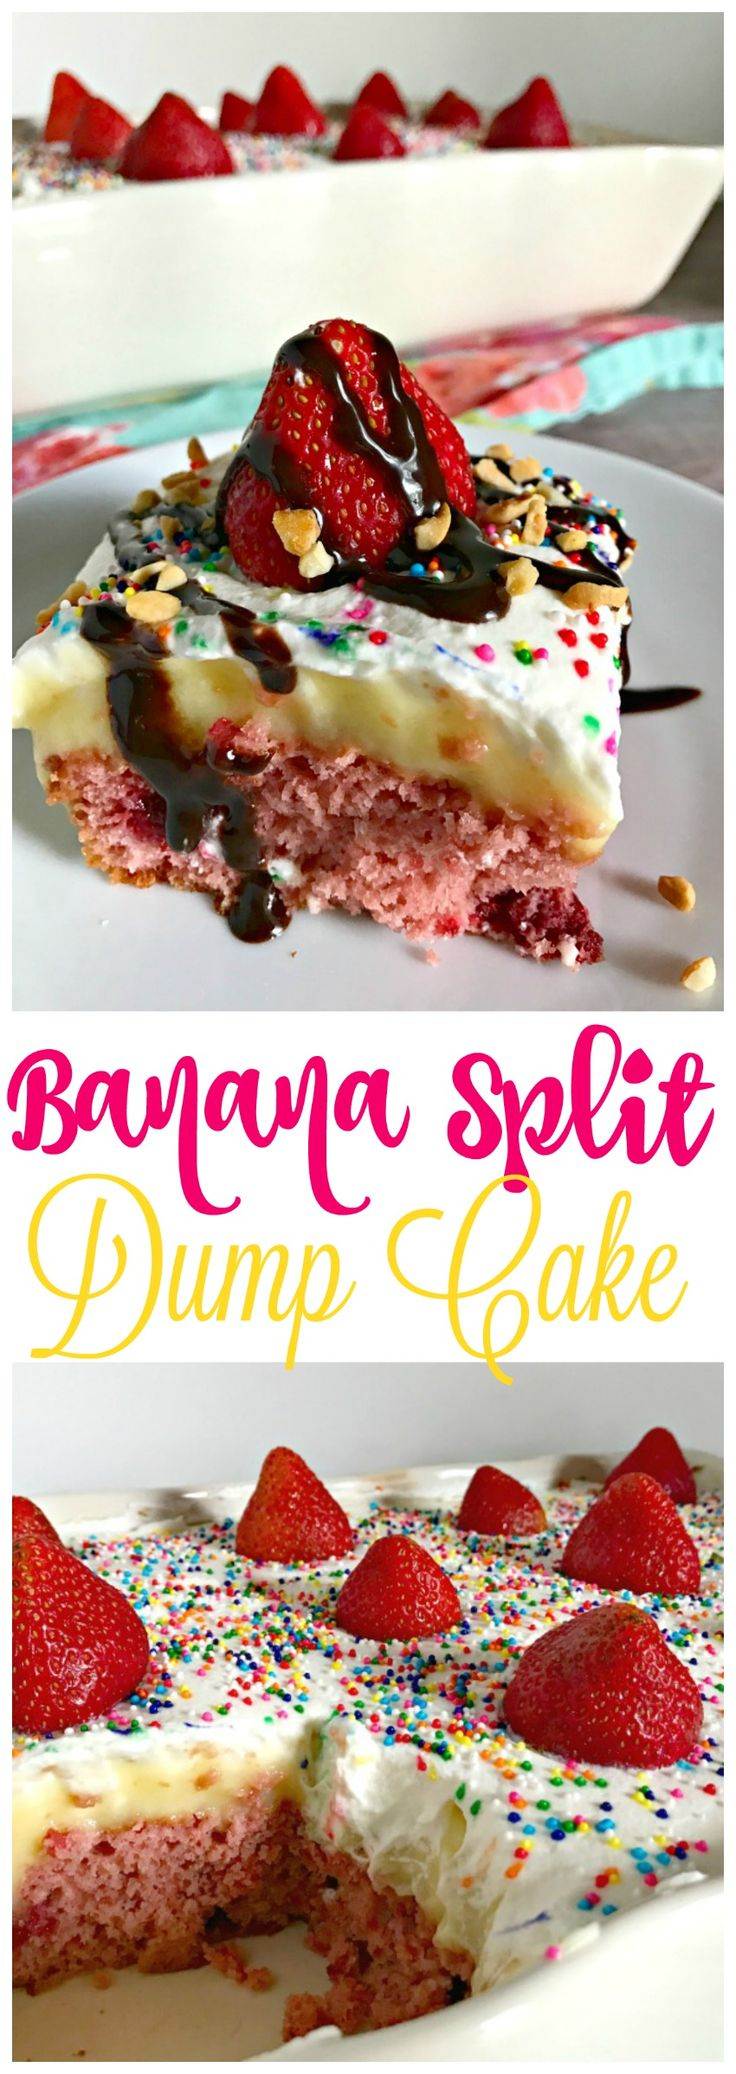 The PERFECT Summer Dessert! Banana Split Dump Cake from The Cards We Drew